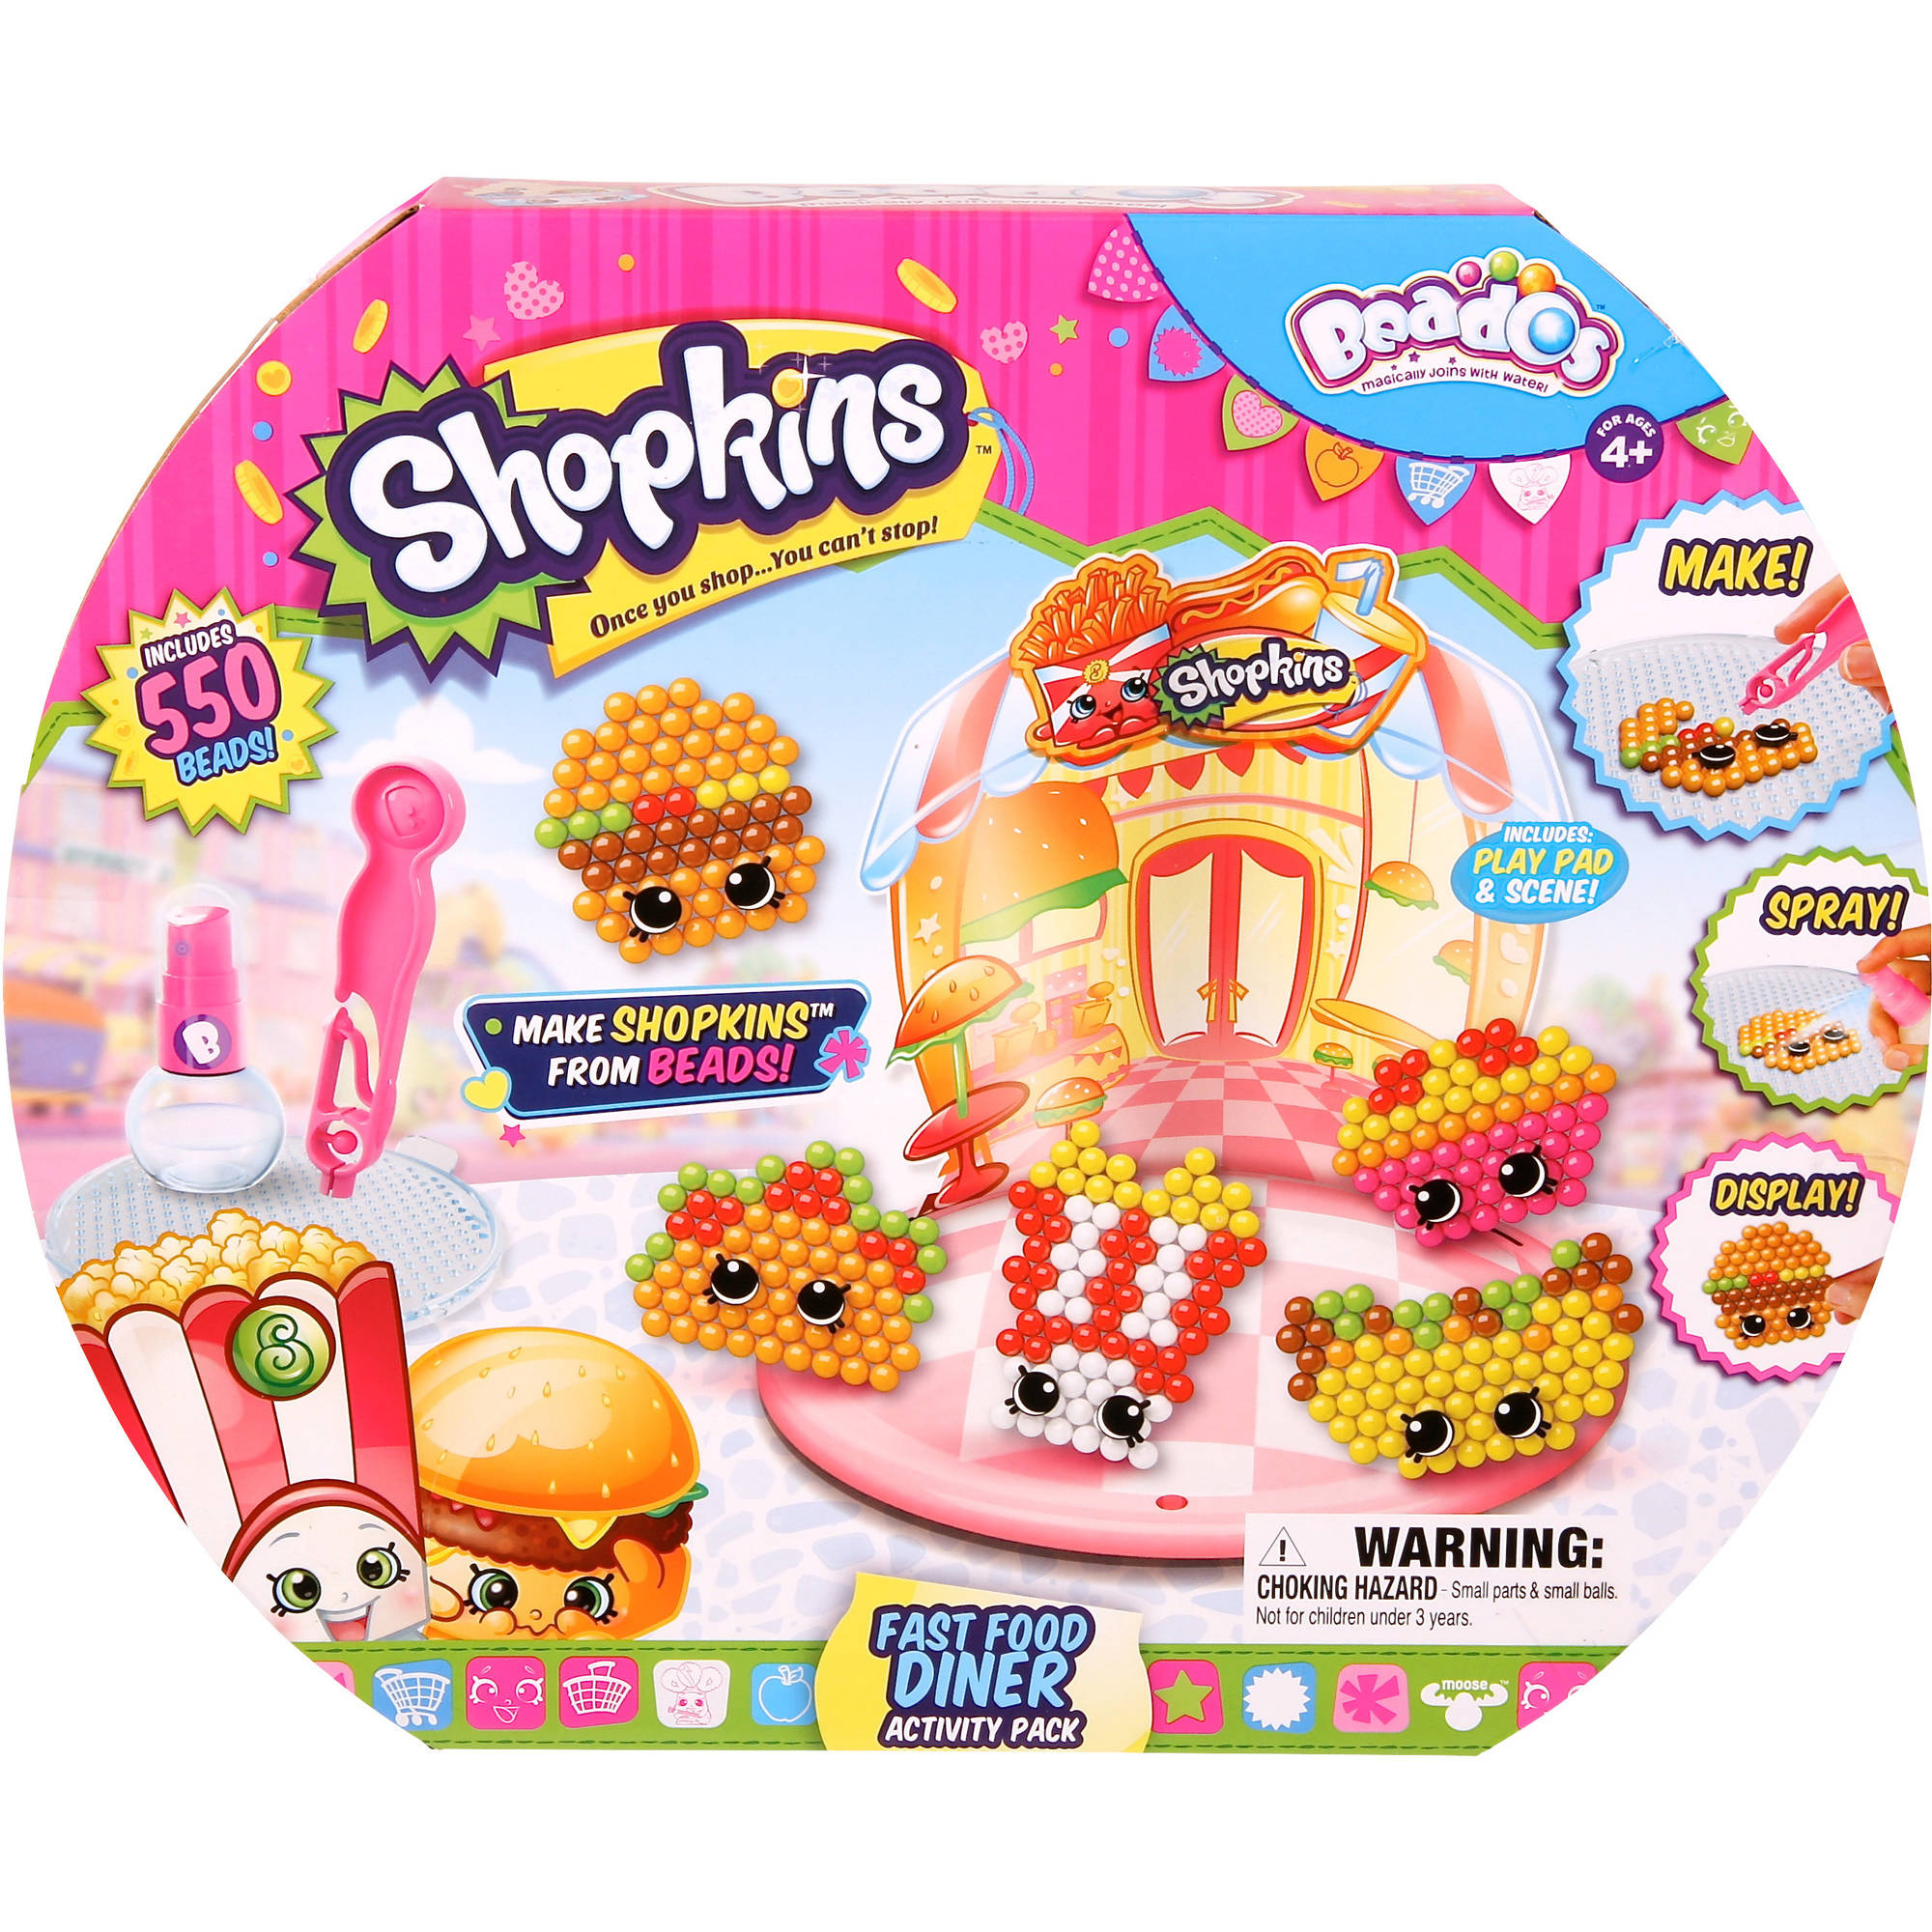 Moose Toys Beados Shopkins Season 3 Activity Pack, Fashion